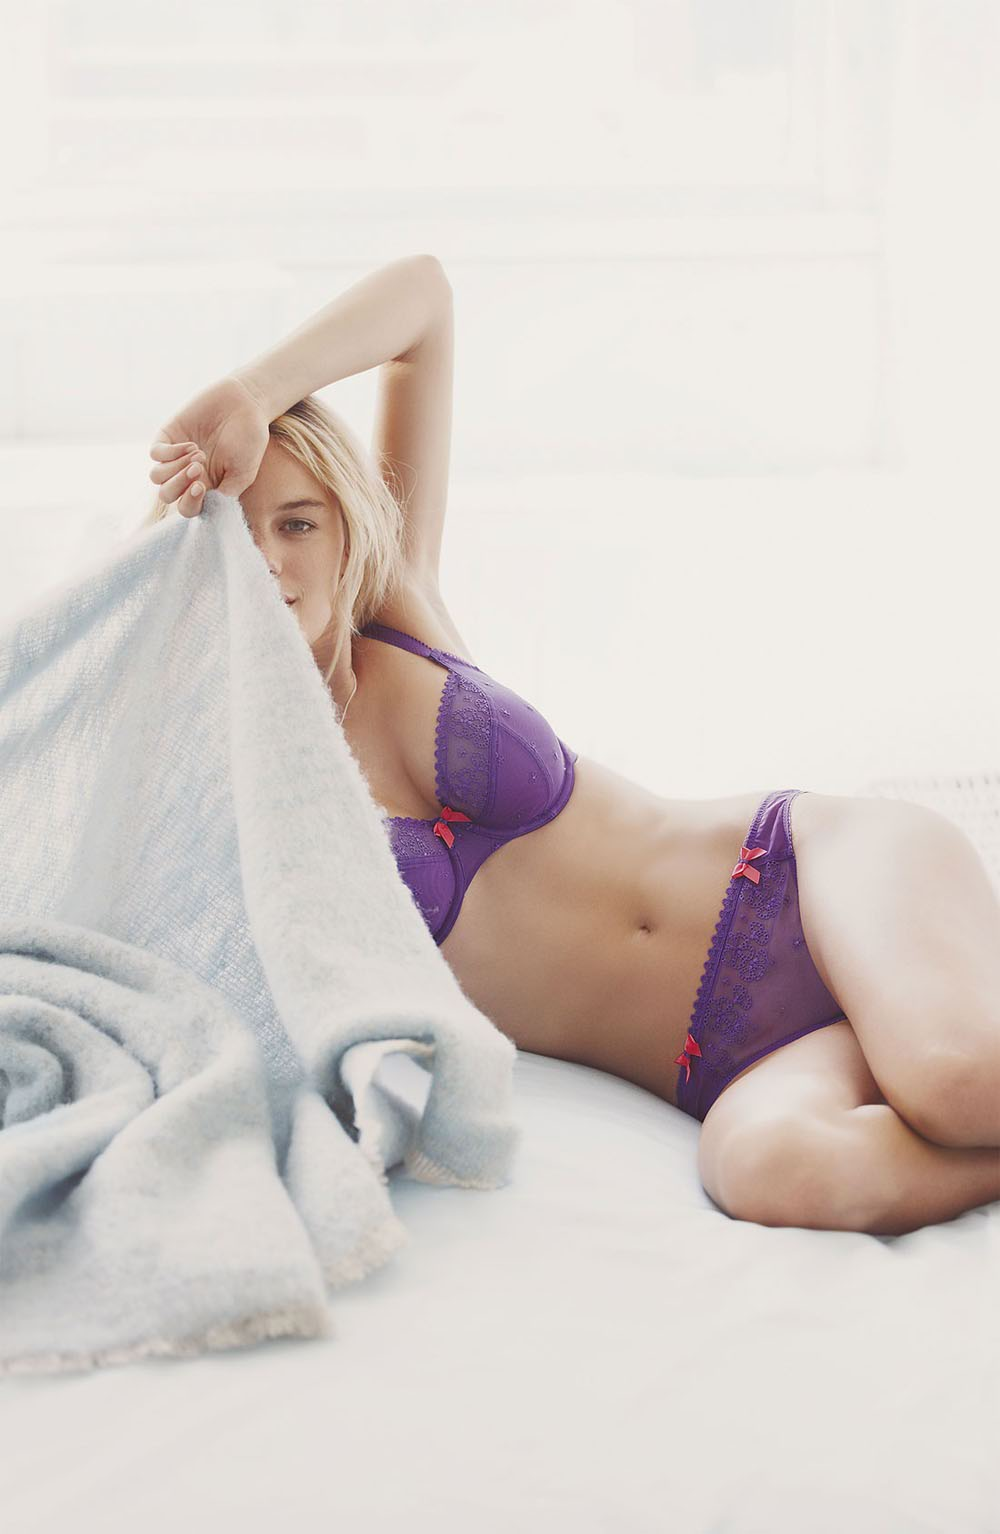 camille rowe0810139848